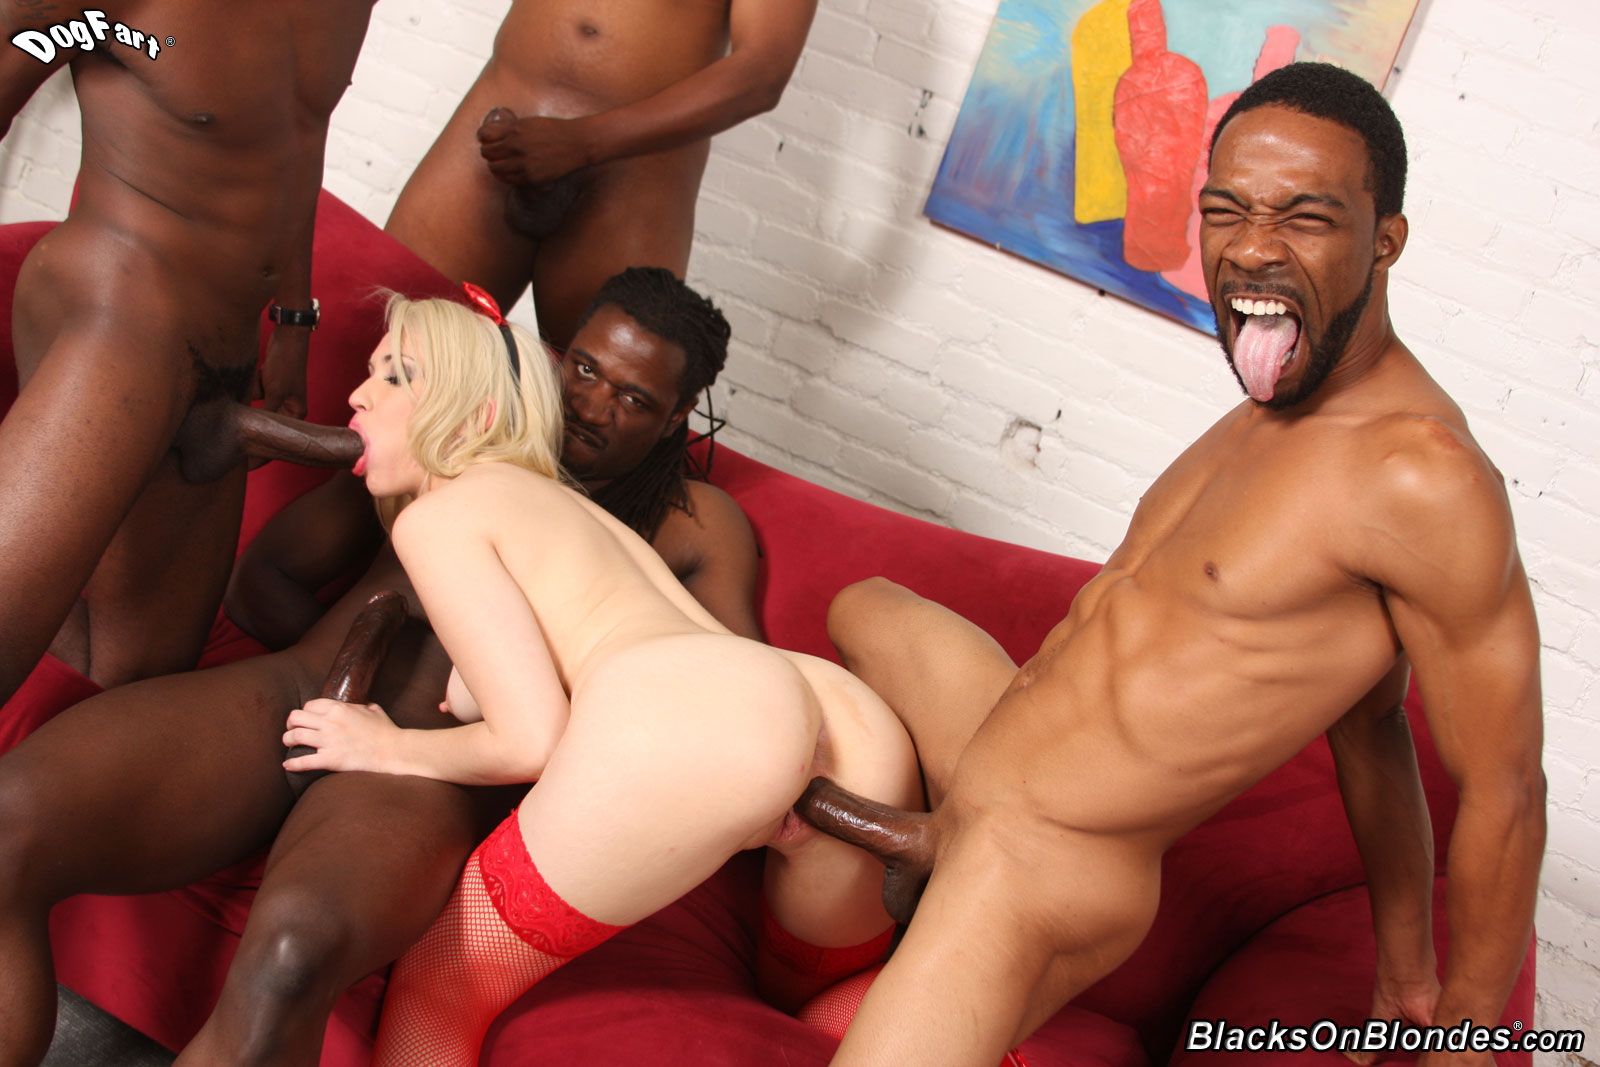 galleries blacksonblondes content sara monroe pic 21